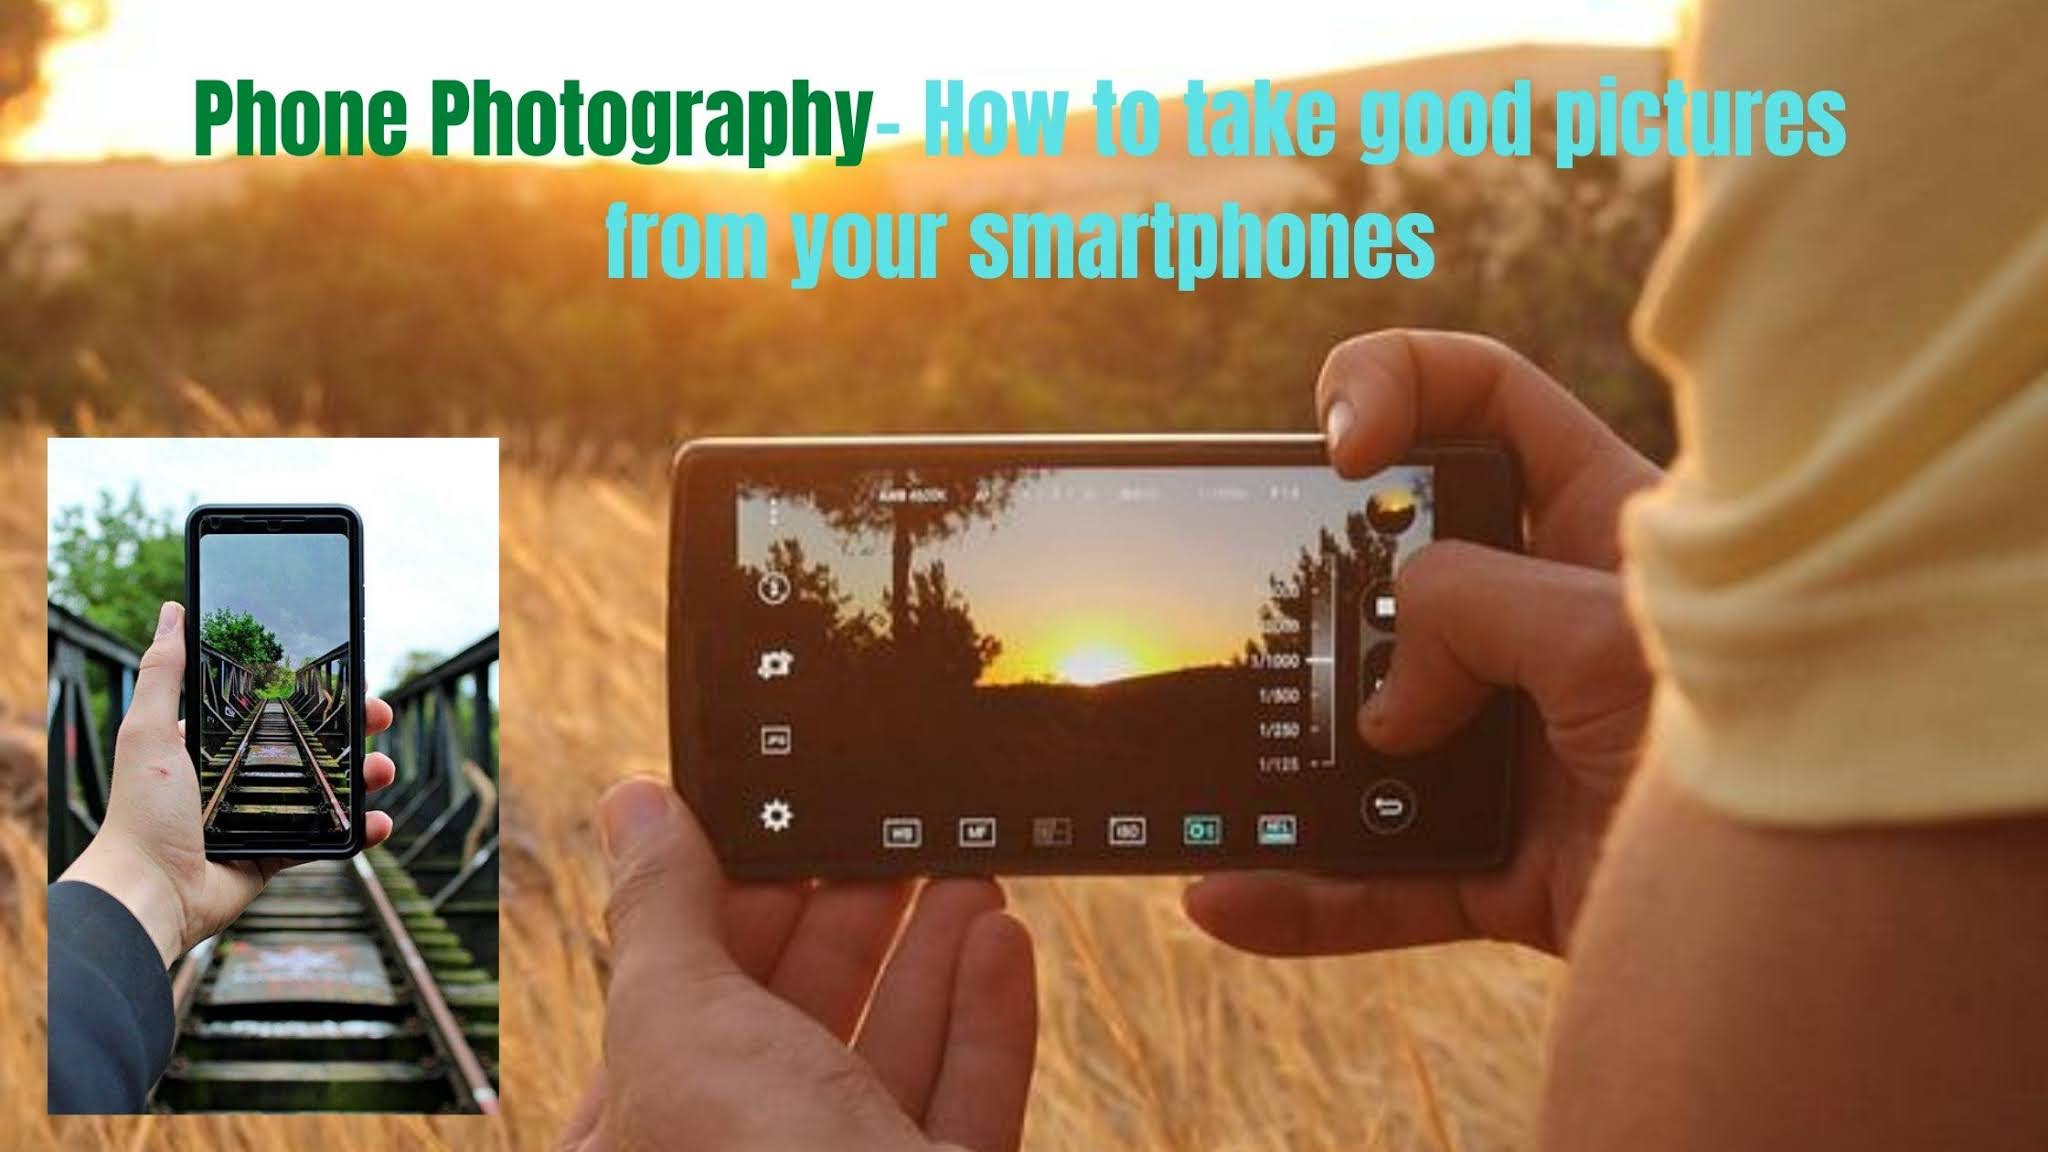 Phone Photography- How to take good pictures from your smartphones